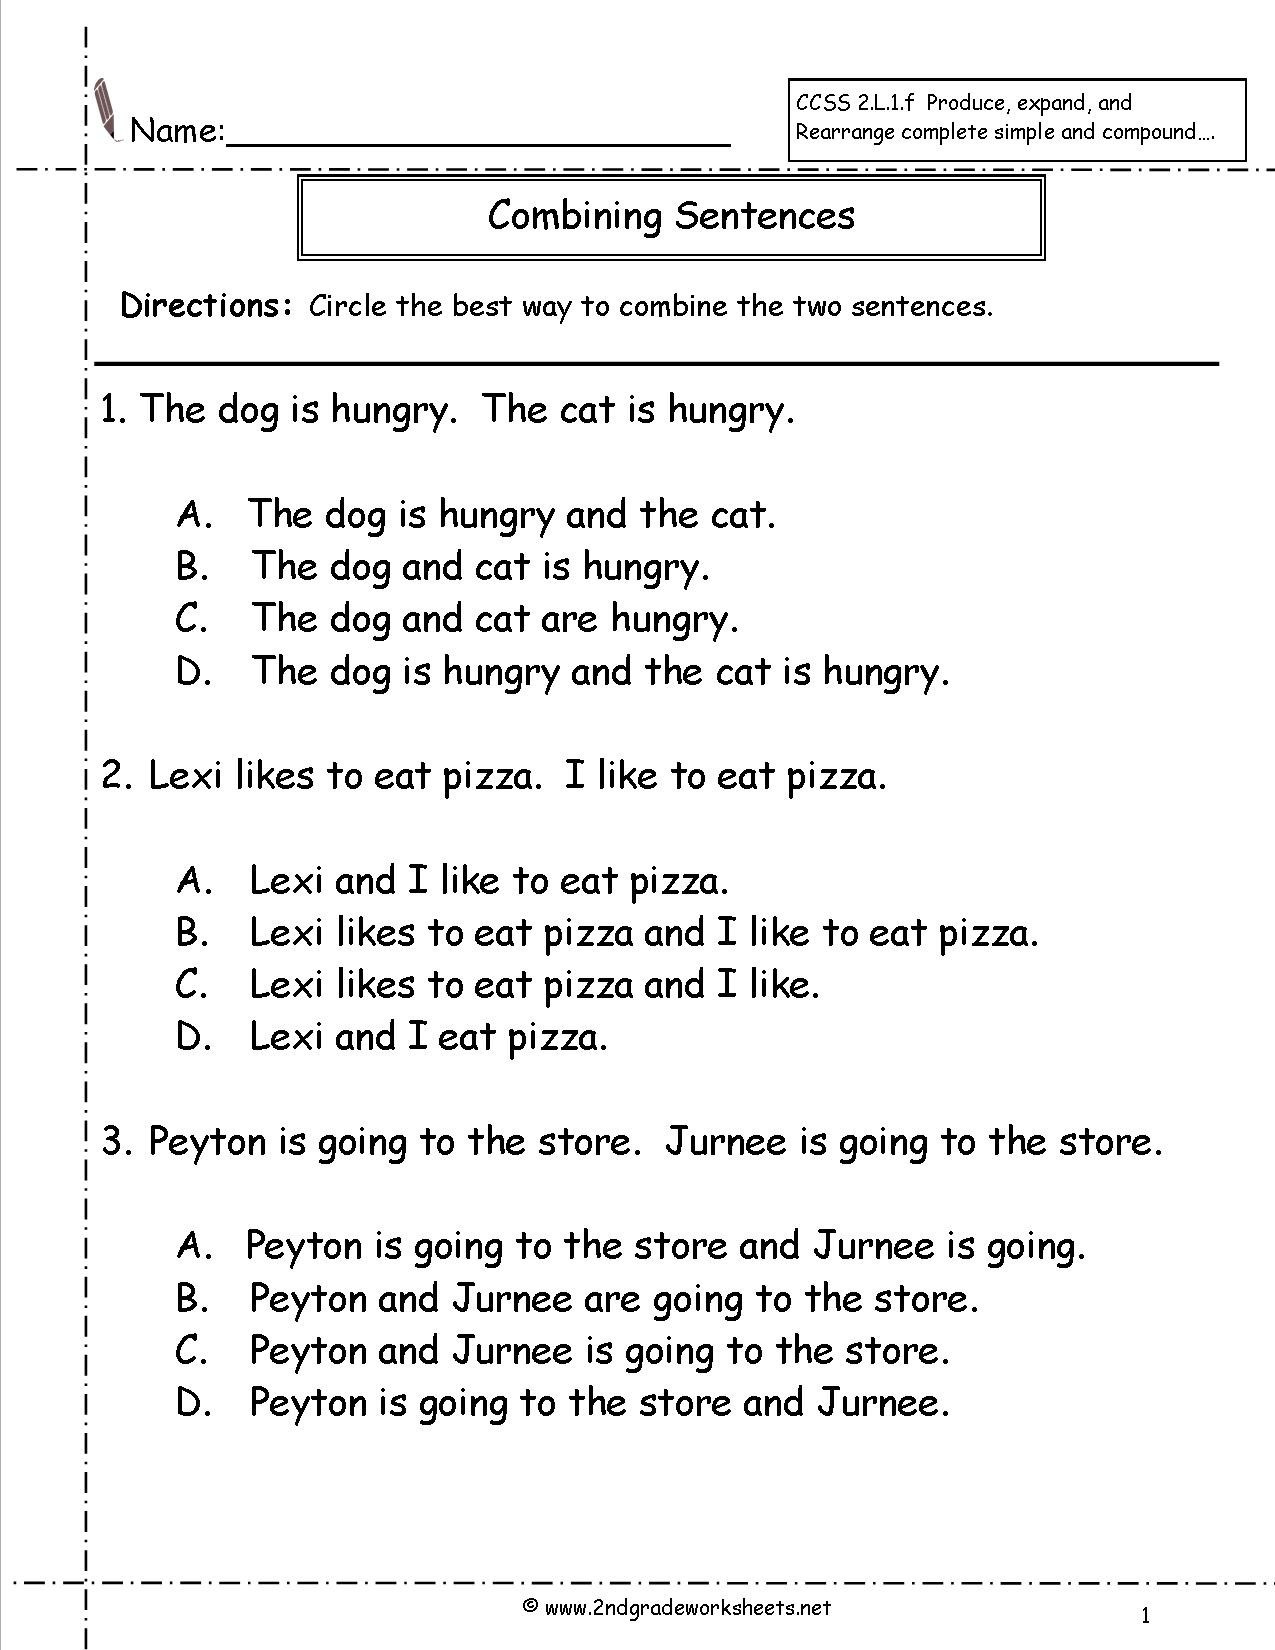 Complete Sentences Worksheets 2nd Grade Creating Plex Sentences Worksheet